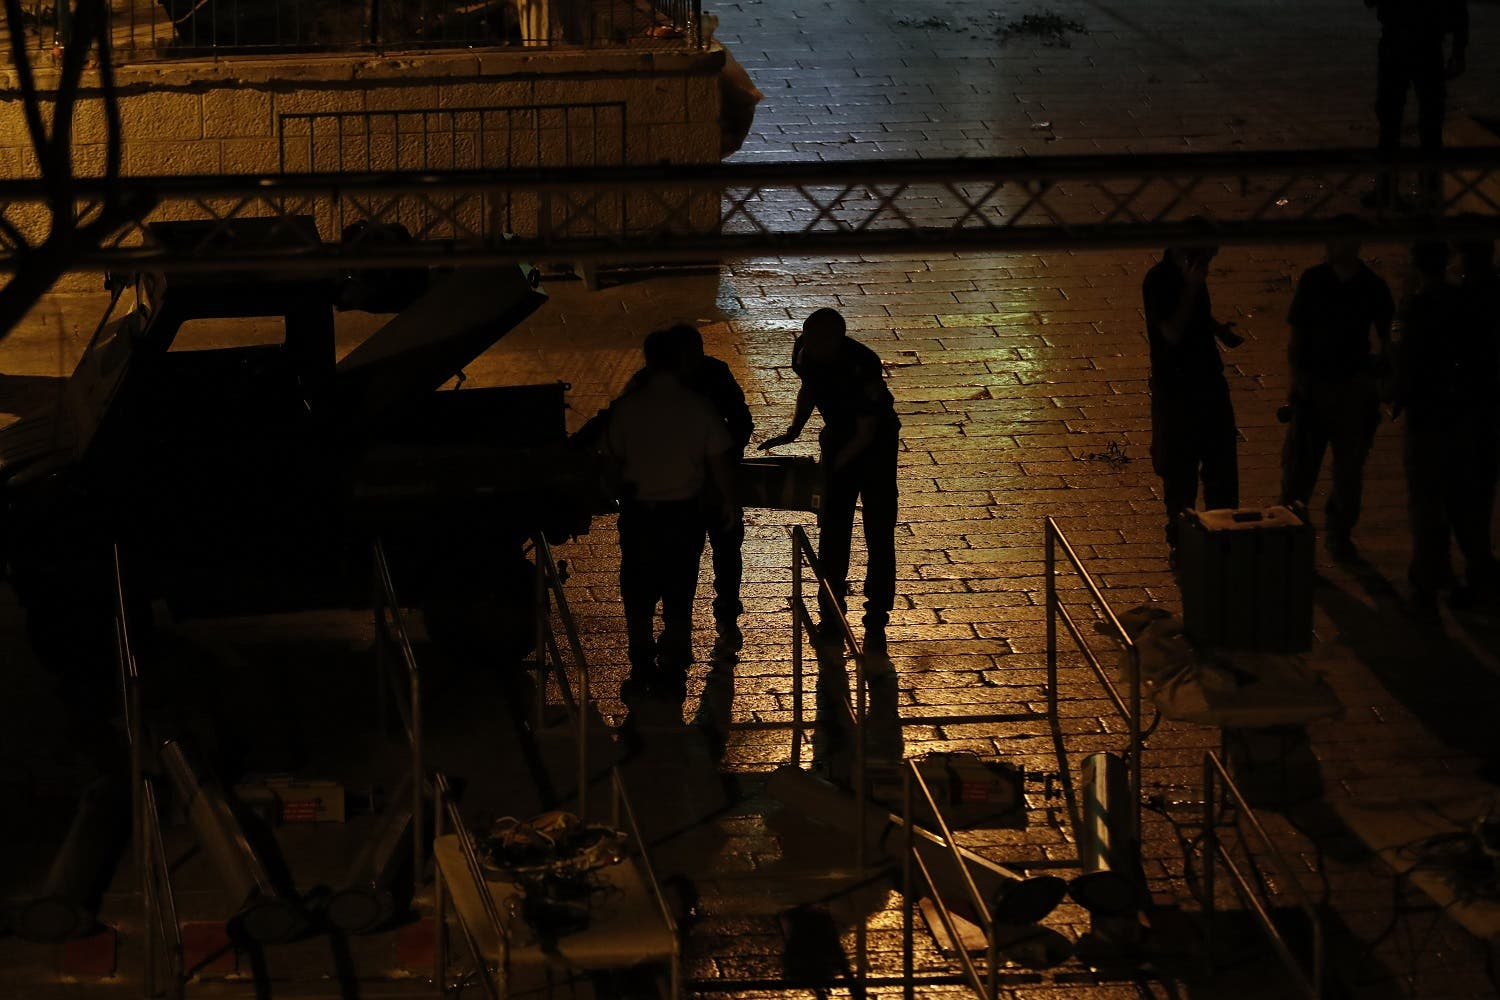 Israeli security forces take down security barriers at the Lions' Gate on July 24, 2017. (AFP)